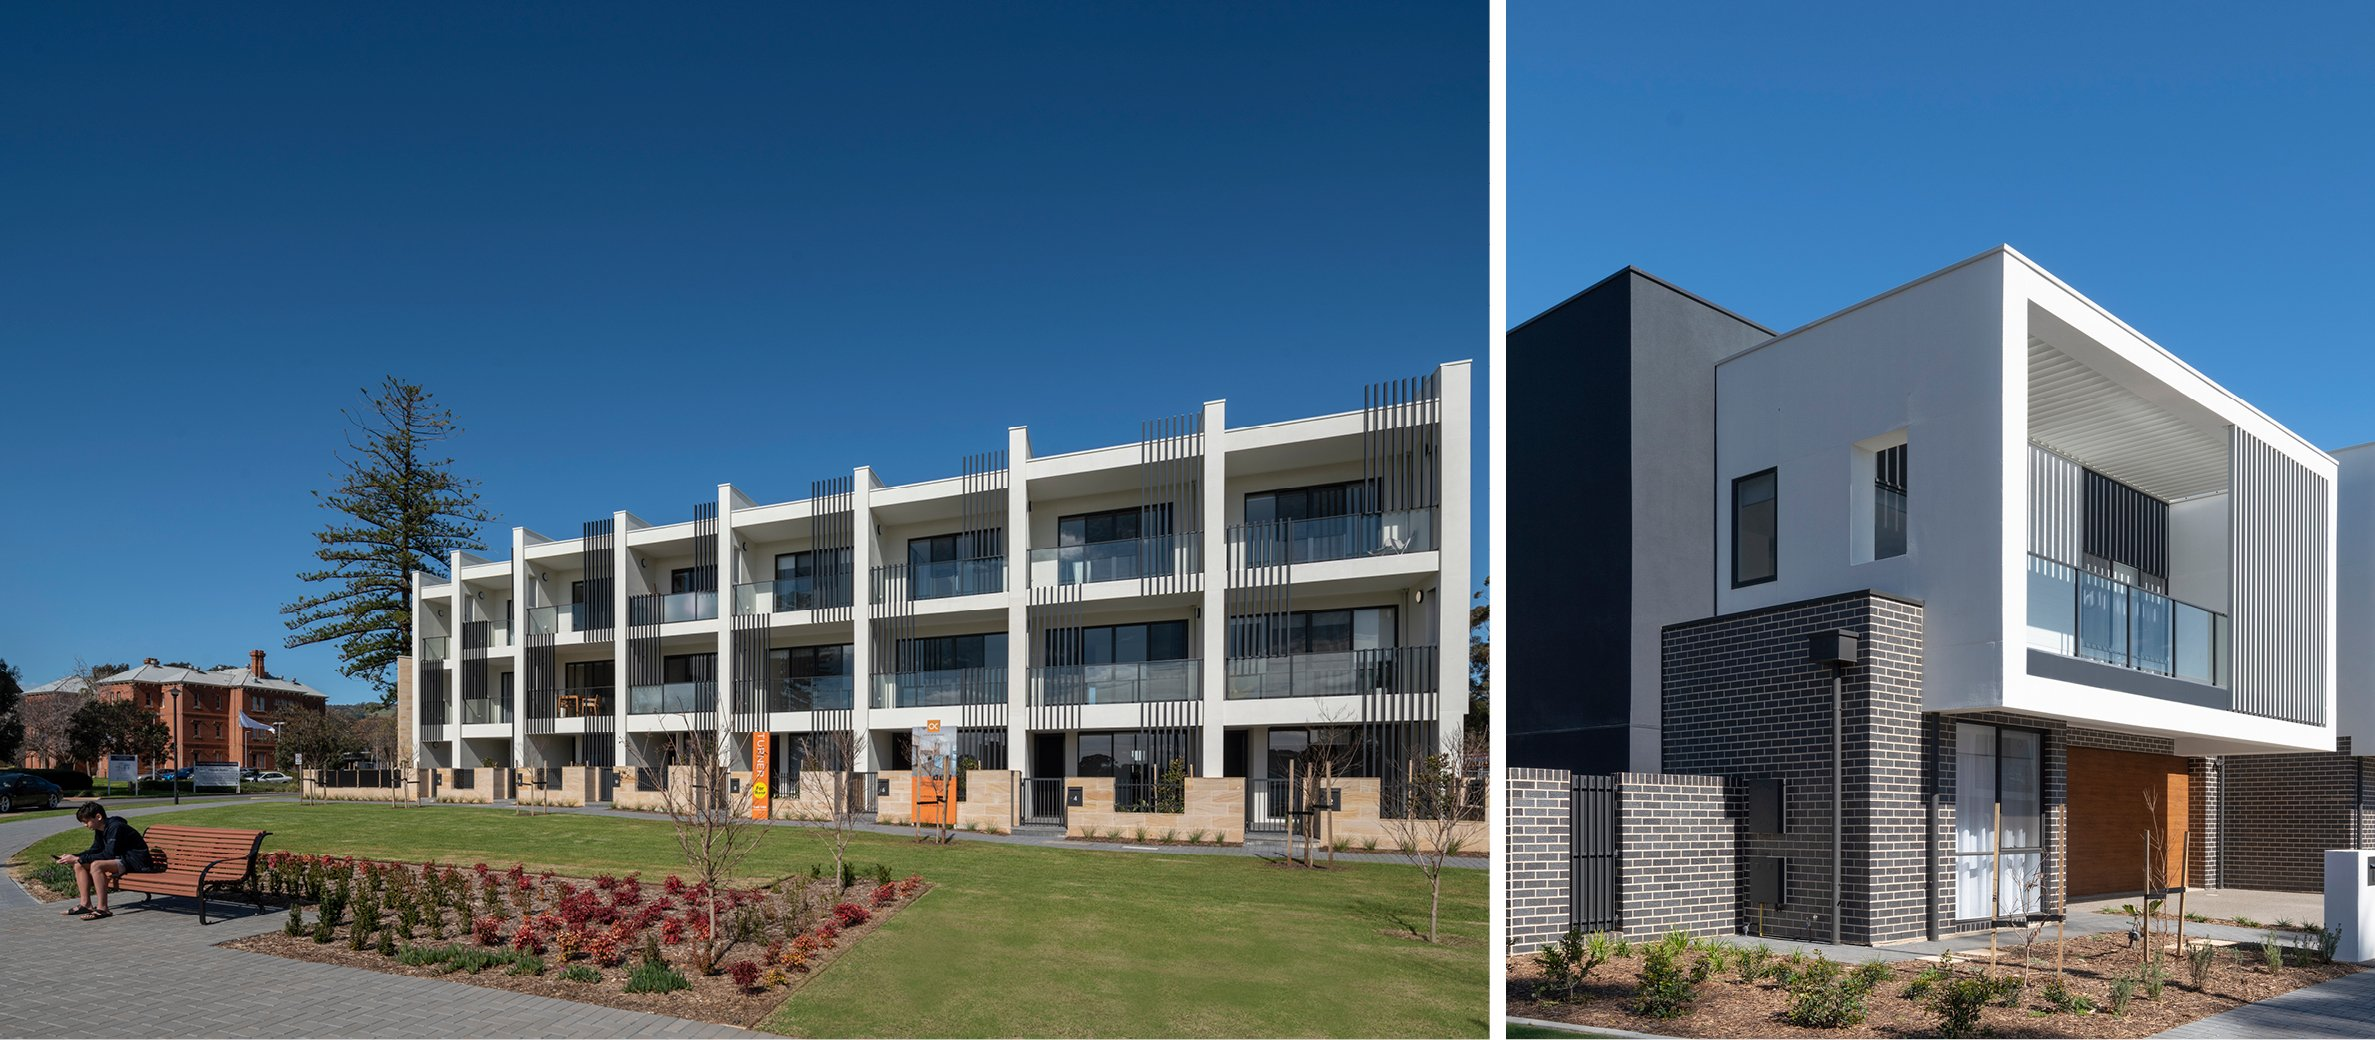 | Glenside Development, Glenside, South Australia - A Urban Development project for Cedar Woods by Hames Sharley